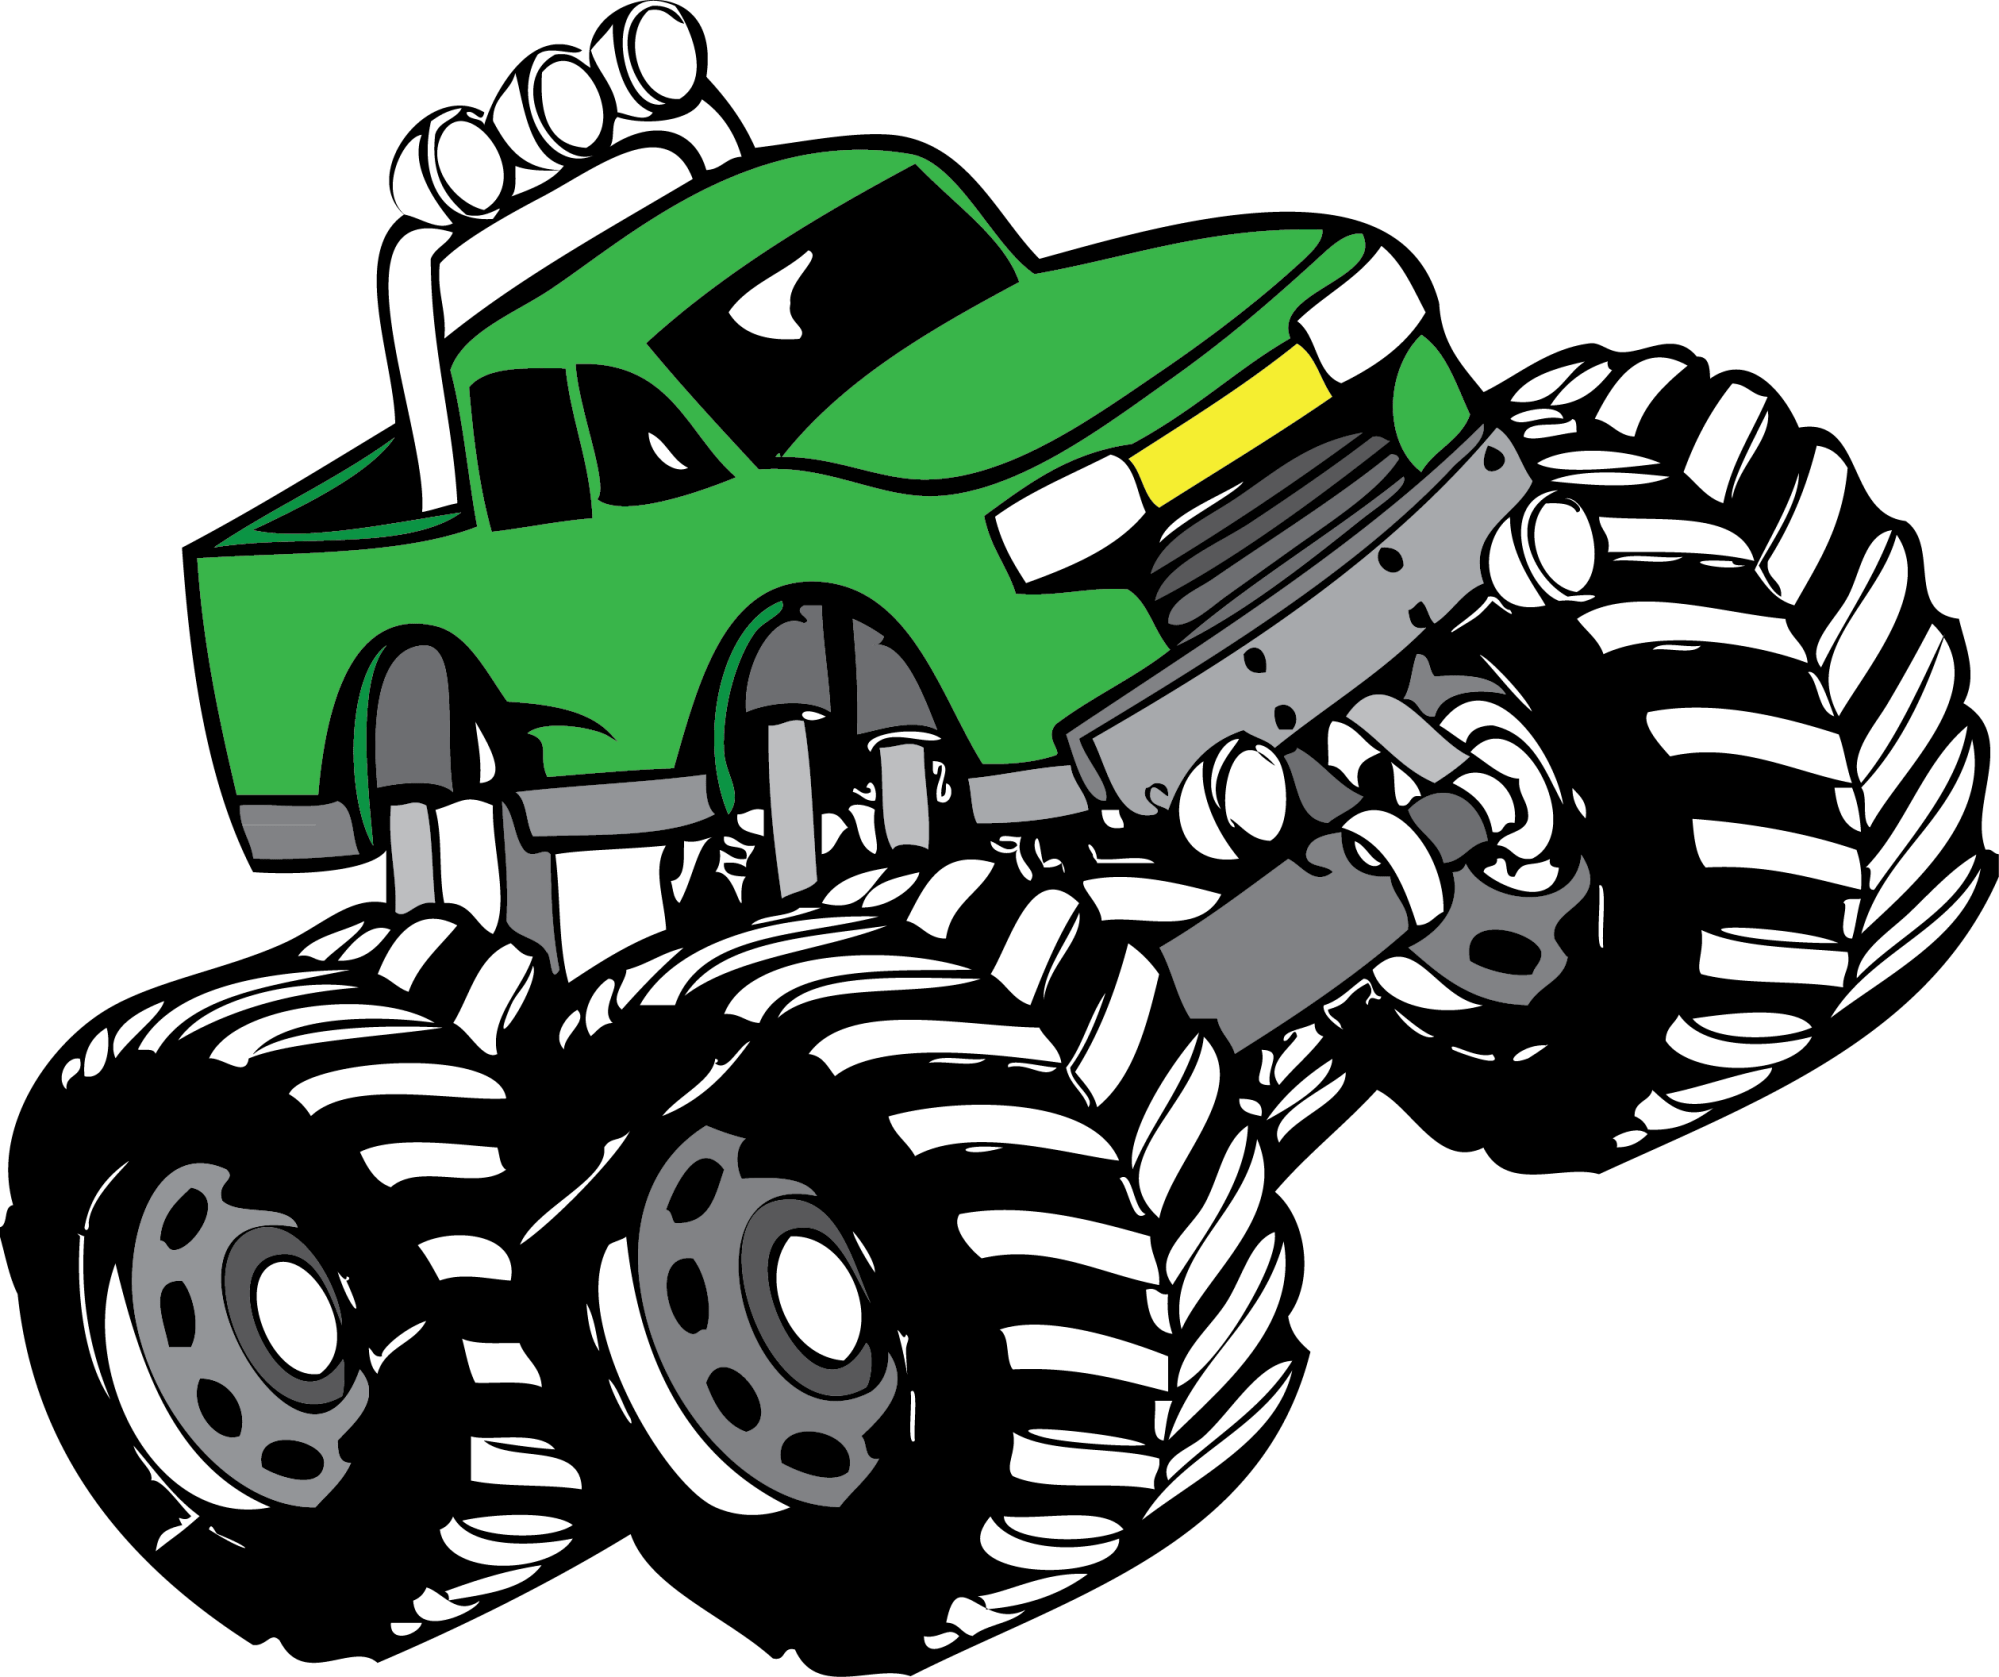 hight resolution of 2519x2113 monster truck clip art pictures free clipart images image